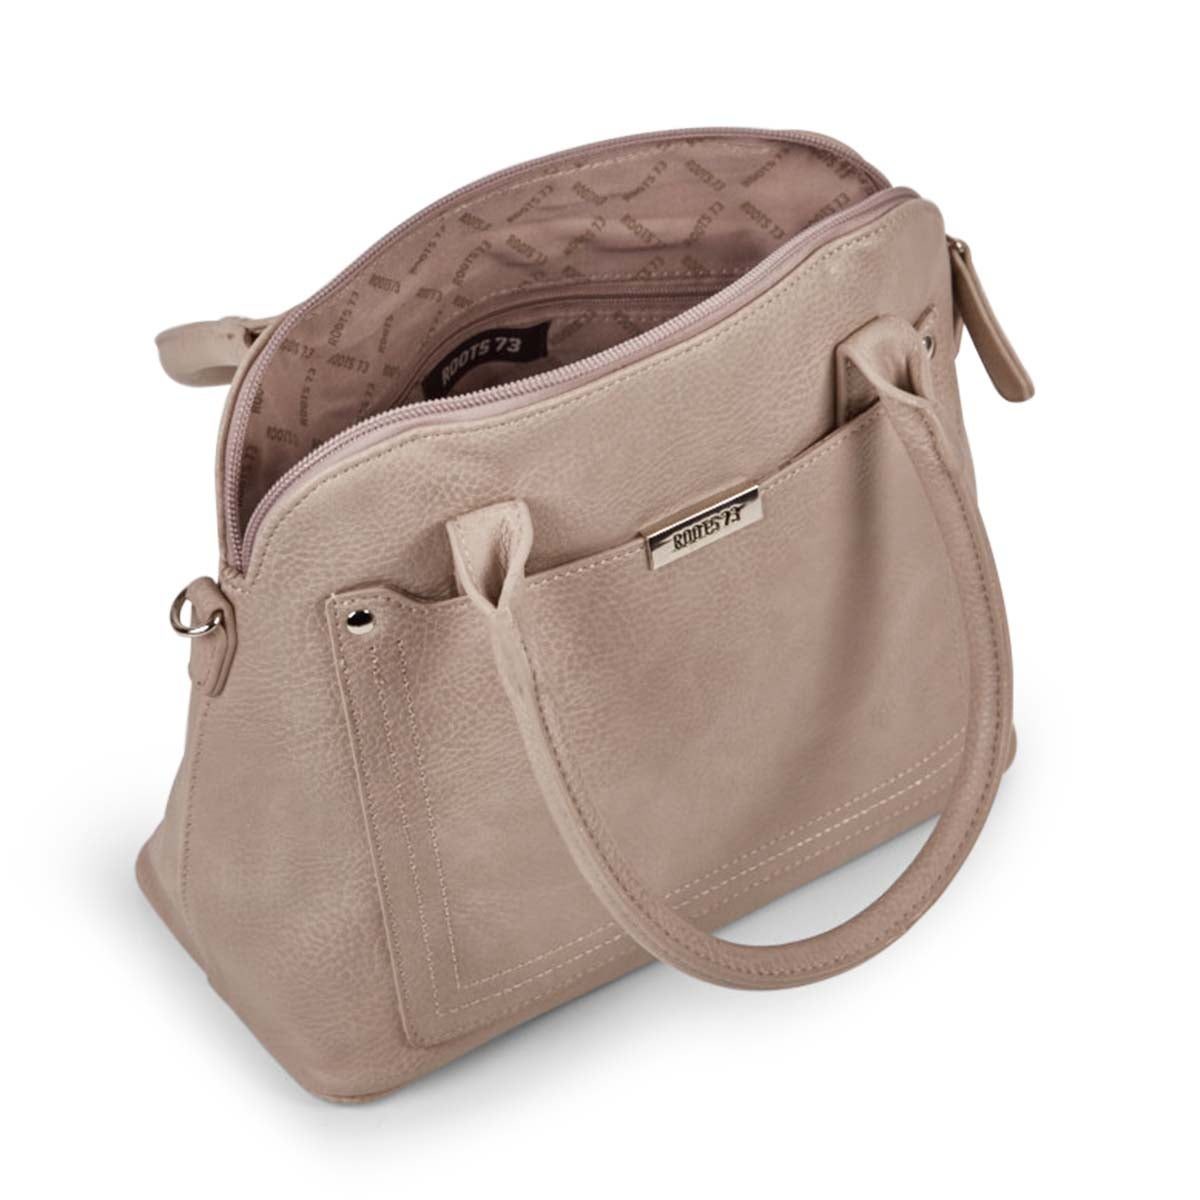 Lds Roots73 taupe satchel